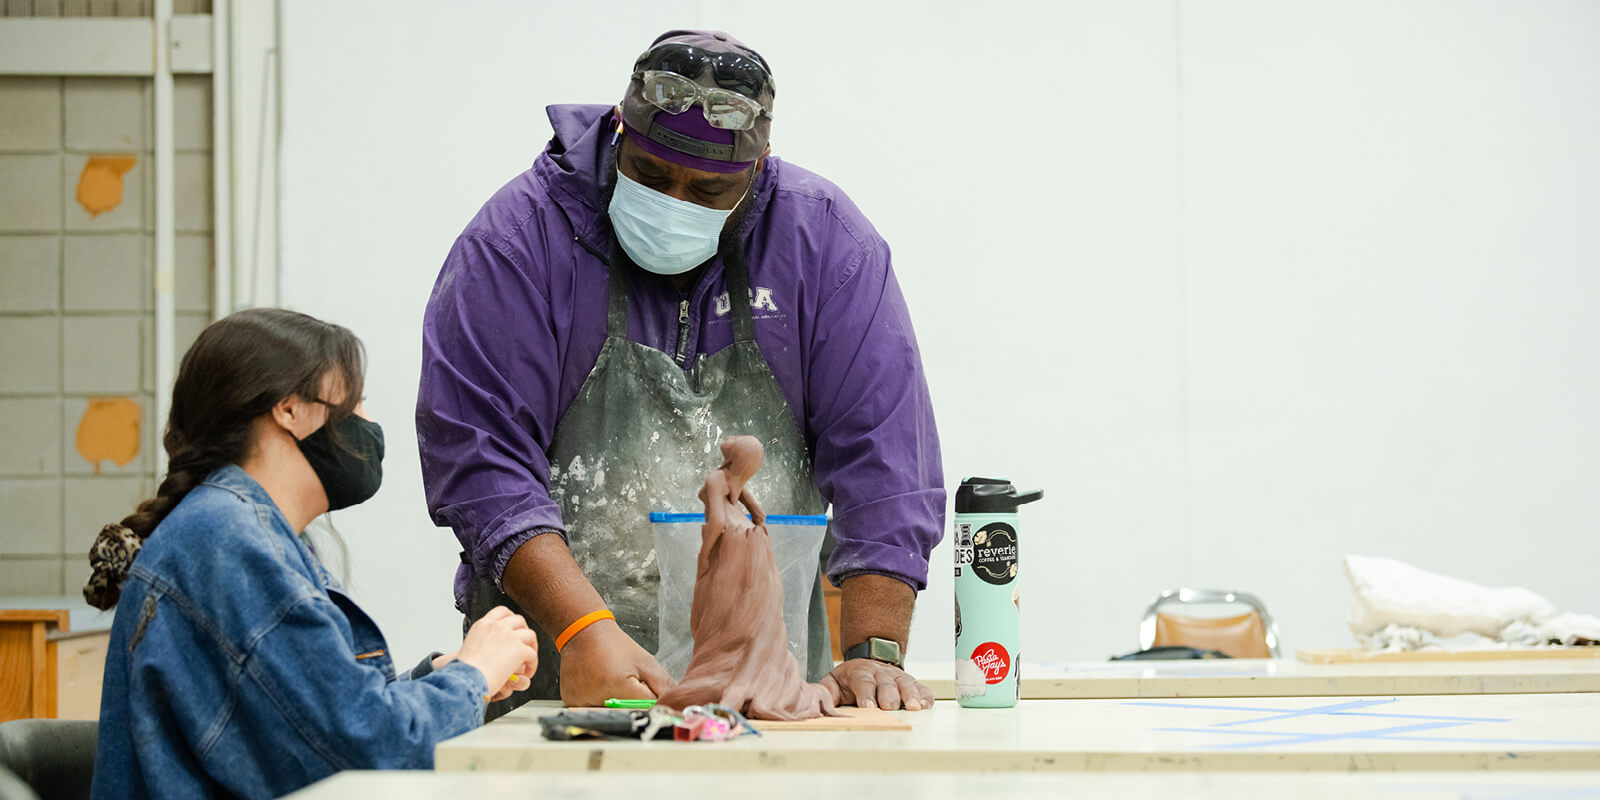 Bryan Massey, professor and chair for the Department of Art and Design, works alongside Charles Johnson, a junior majoring in art education and psychology, on the beginnings of a bronze cast sculpture.